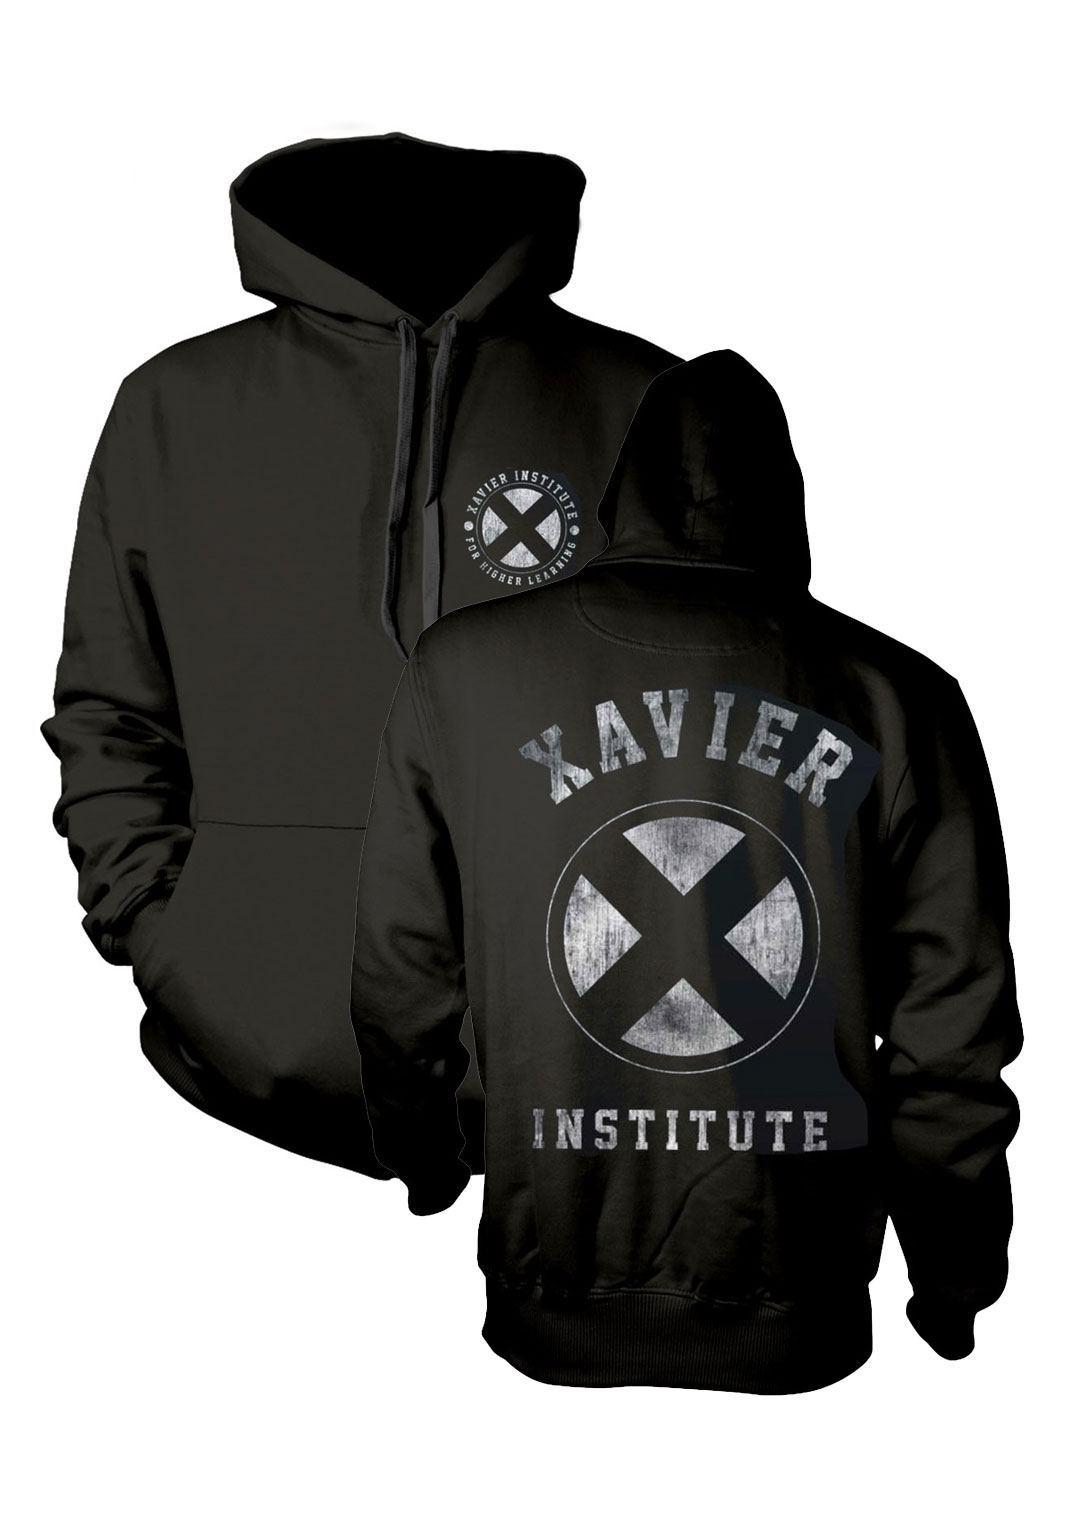 X-Men Hooded Sweater Institute Size S